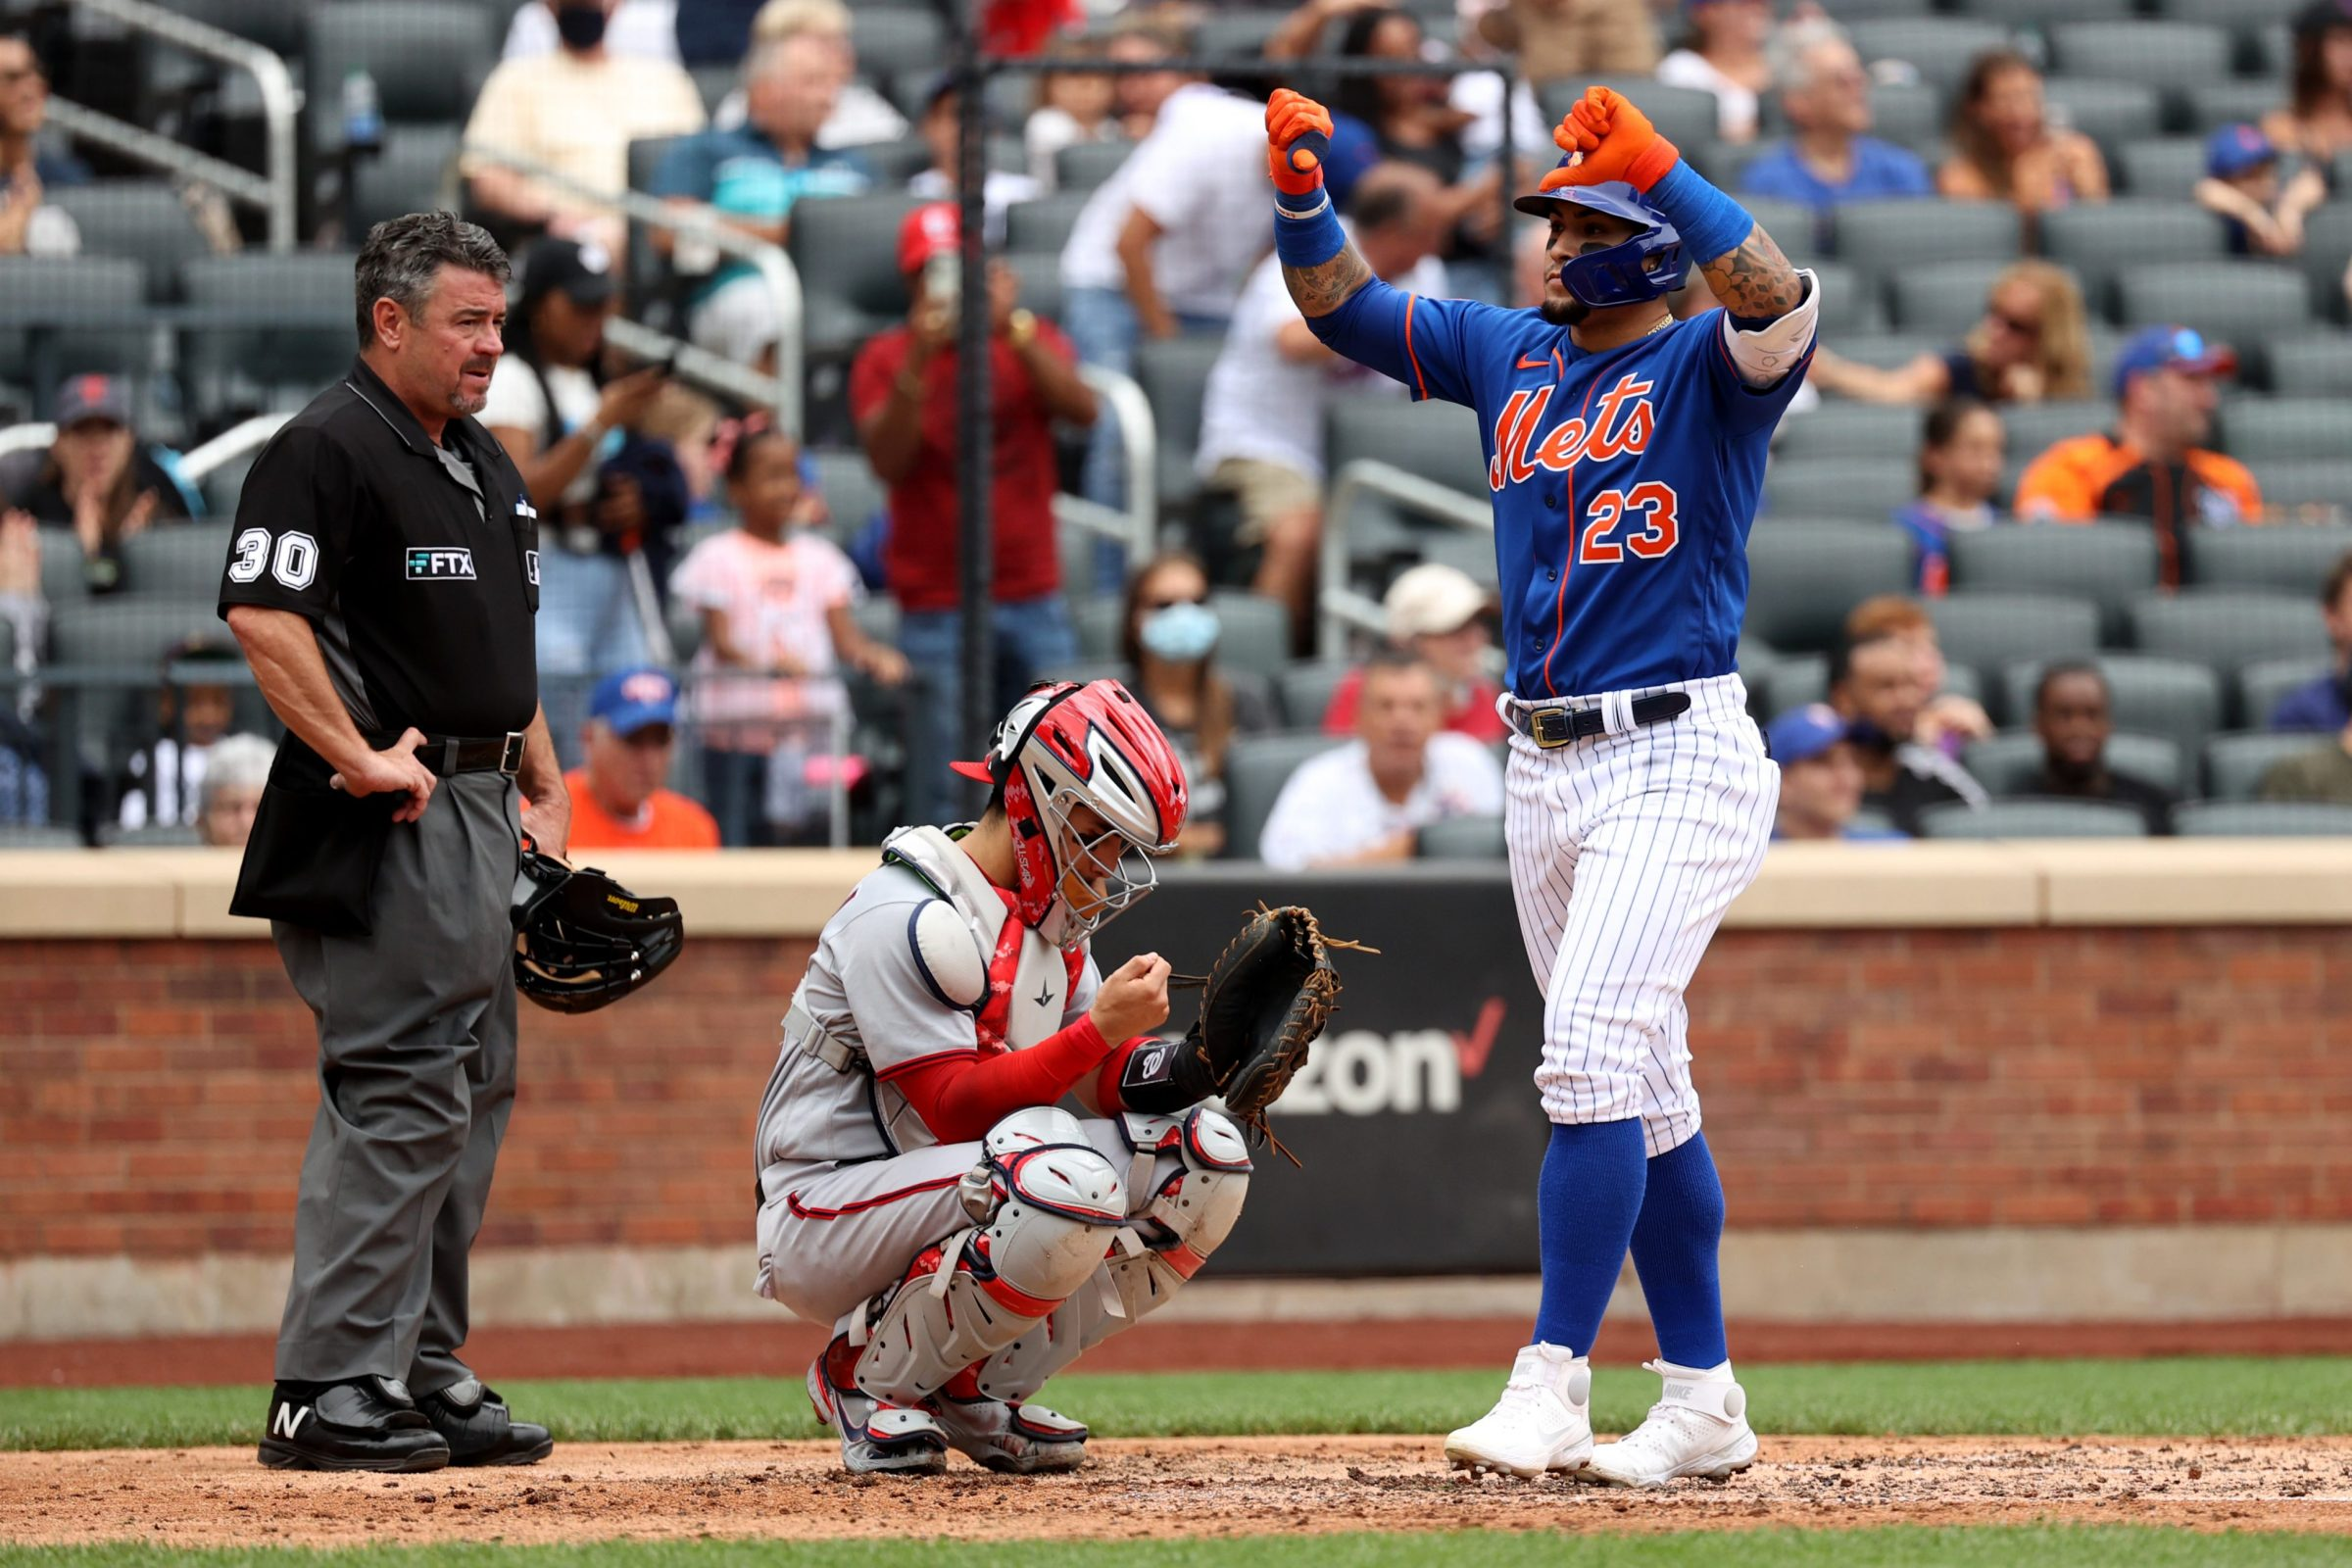 Javier Baez does a double thumbs-down gesture, apparently directed at Mets fans, after hitting a home run on Sunday against the Nationals.